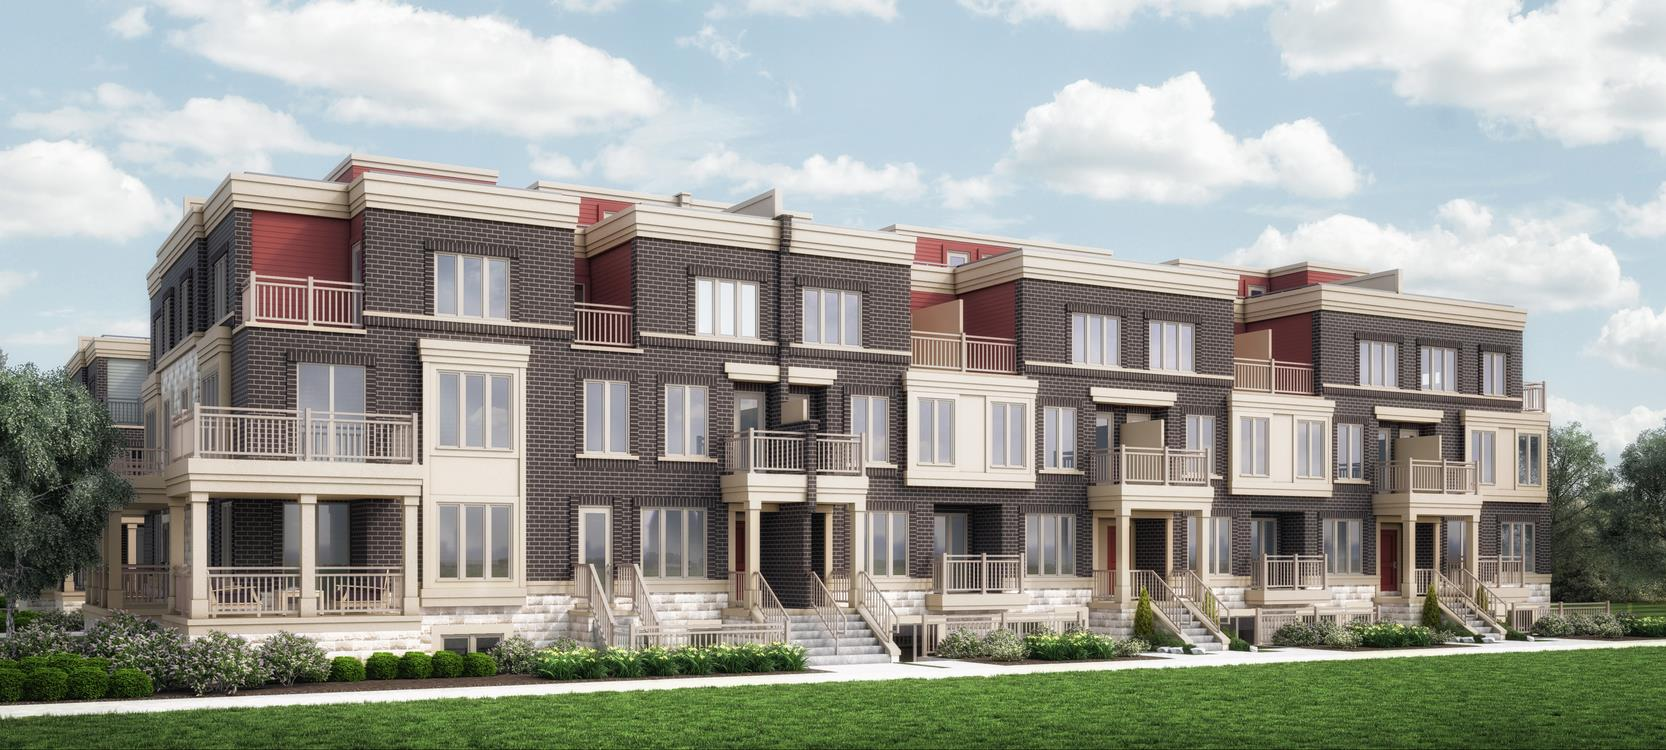 Minto Longbranch Townhomes Rendering3